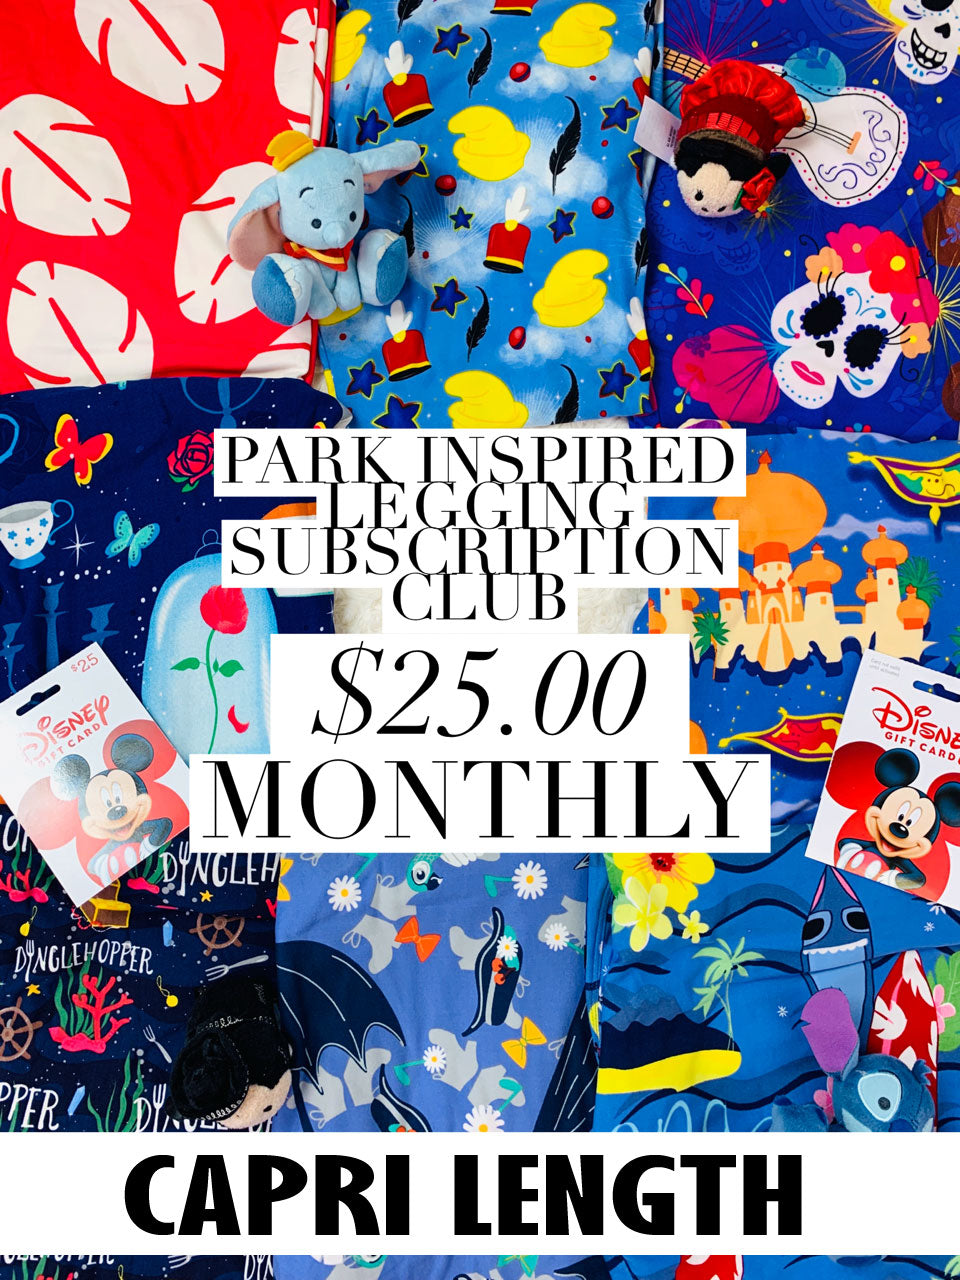 Park Inspired Capri Leggings Subscription Club - Monthly Subscription